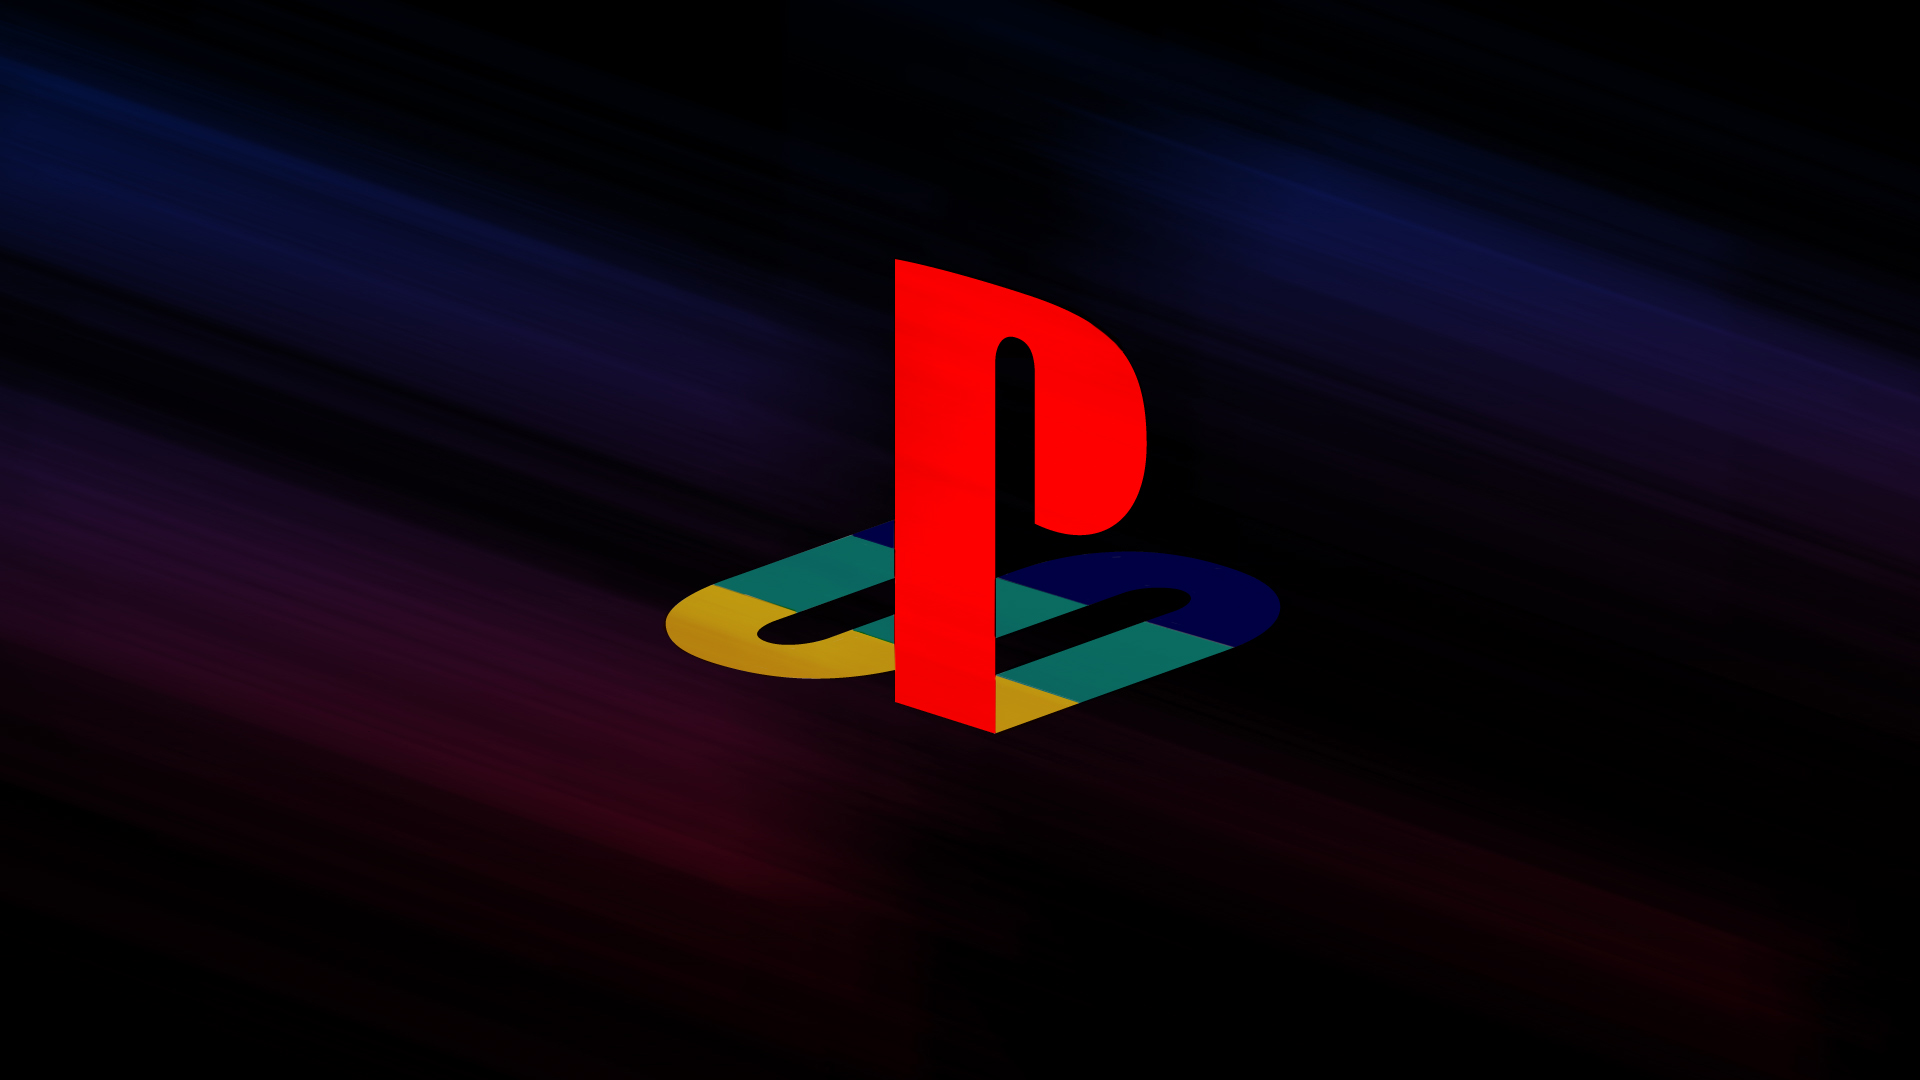 PlayStation Logo Wallpapers